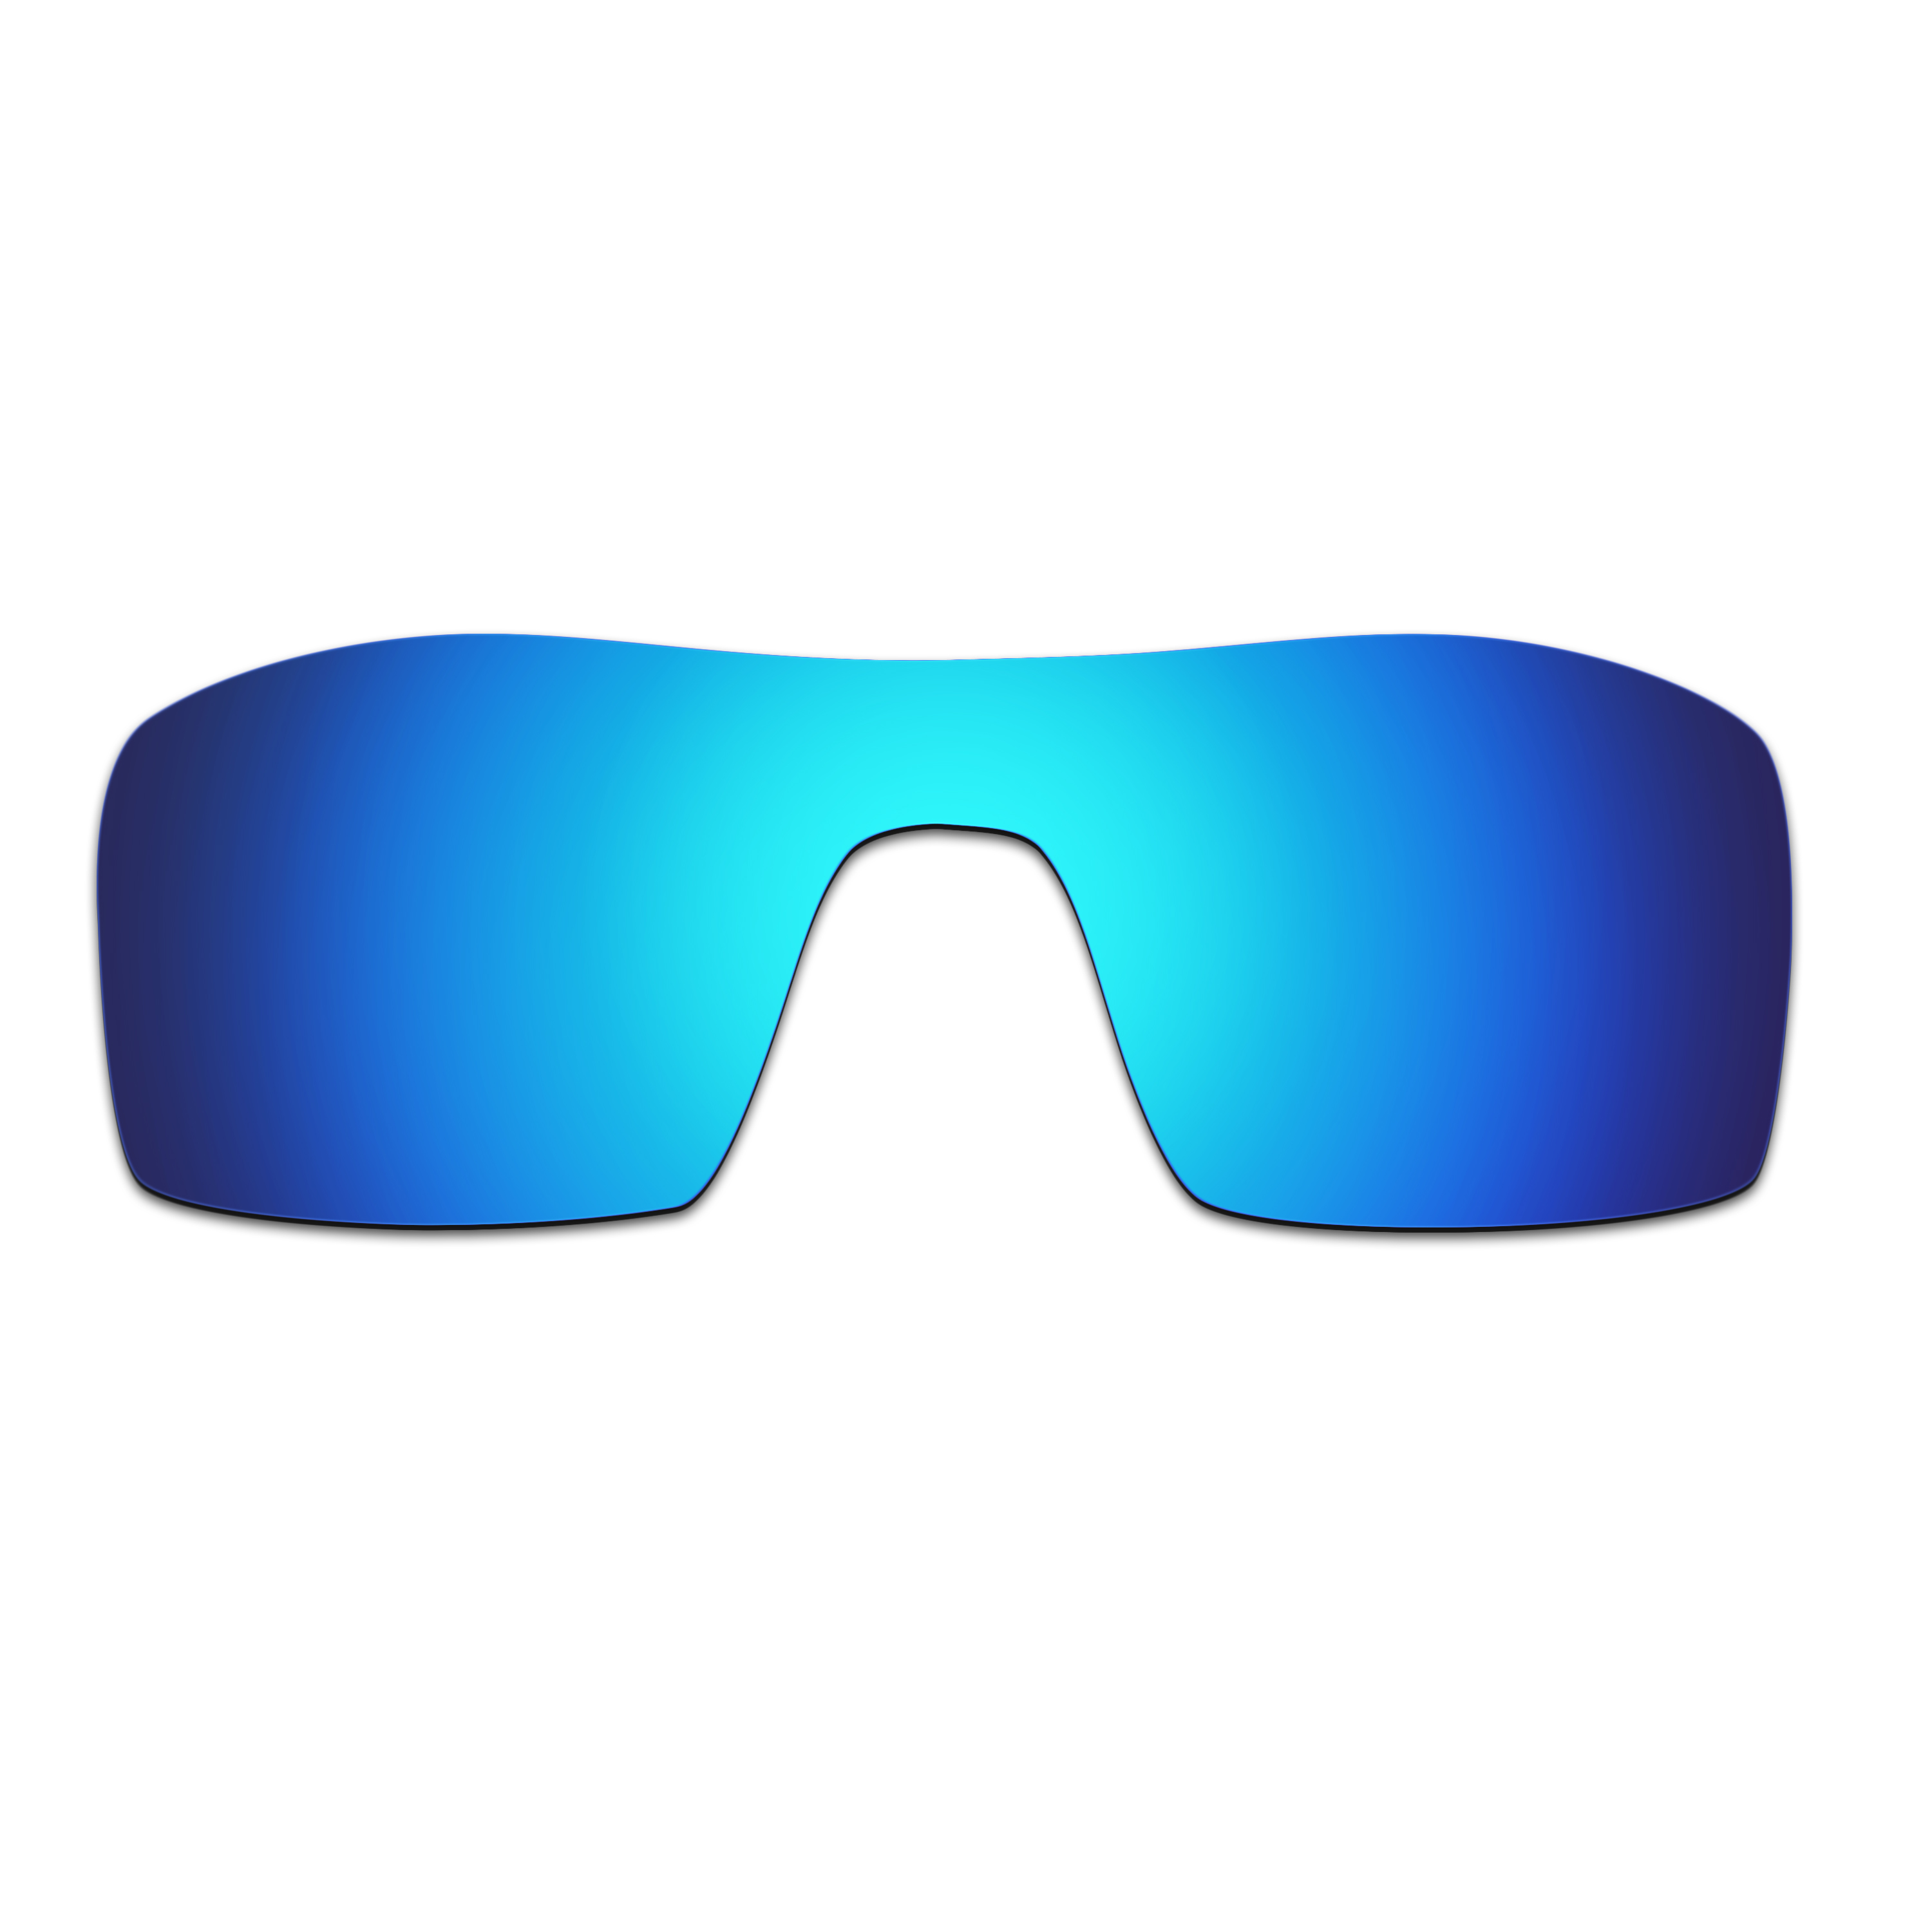 HKUCO Blue Polarized Replacement Lenses and Blue Earsocks Rubber Kit For Oakley Juliet Sunglasses